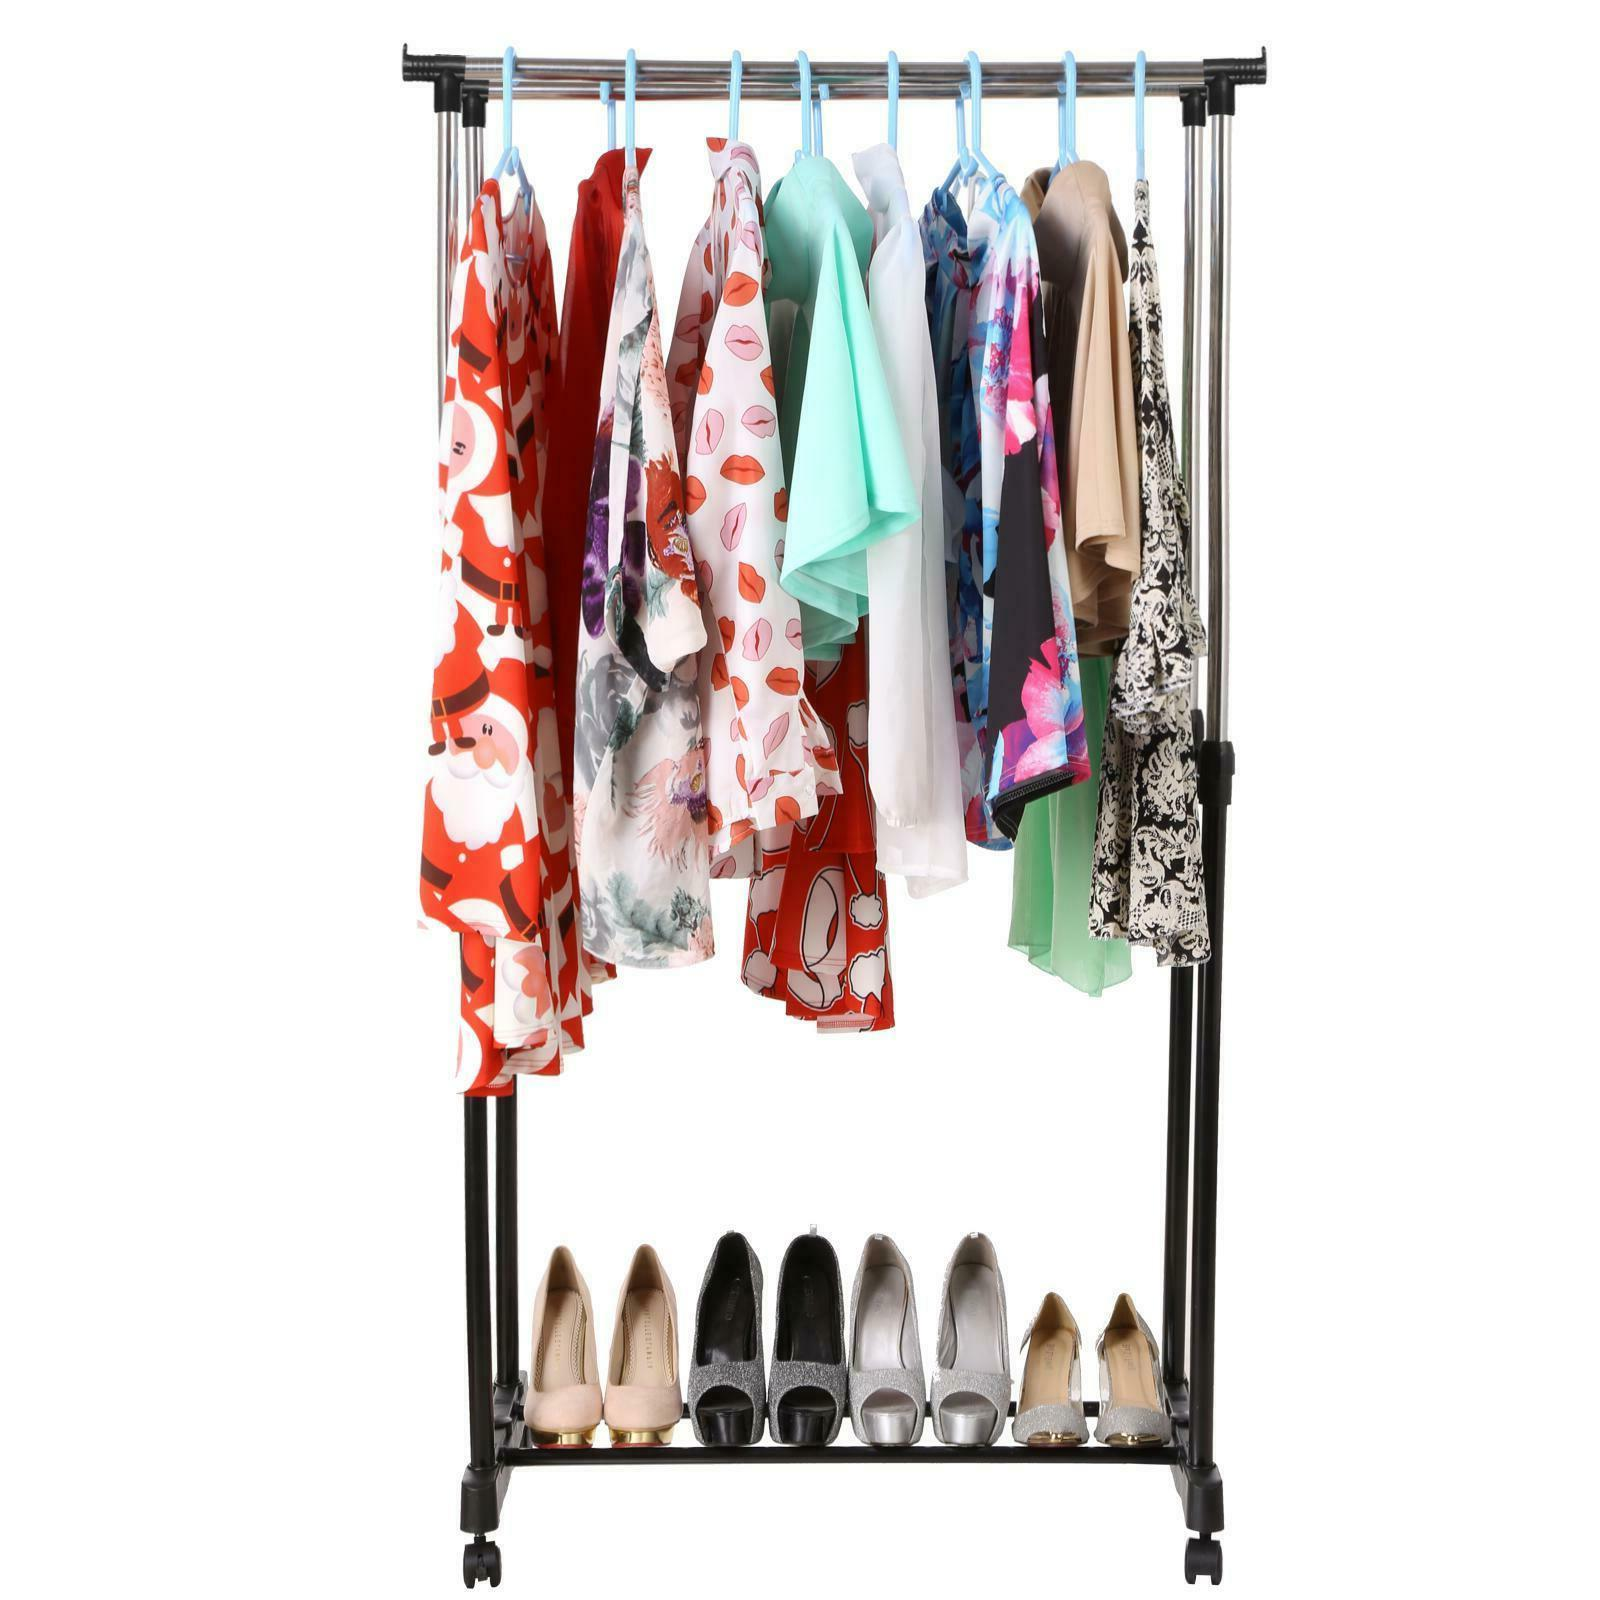 Heavy Rack Hanging Drying Display Poles